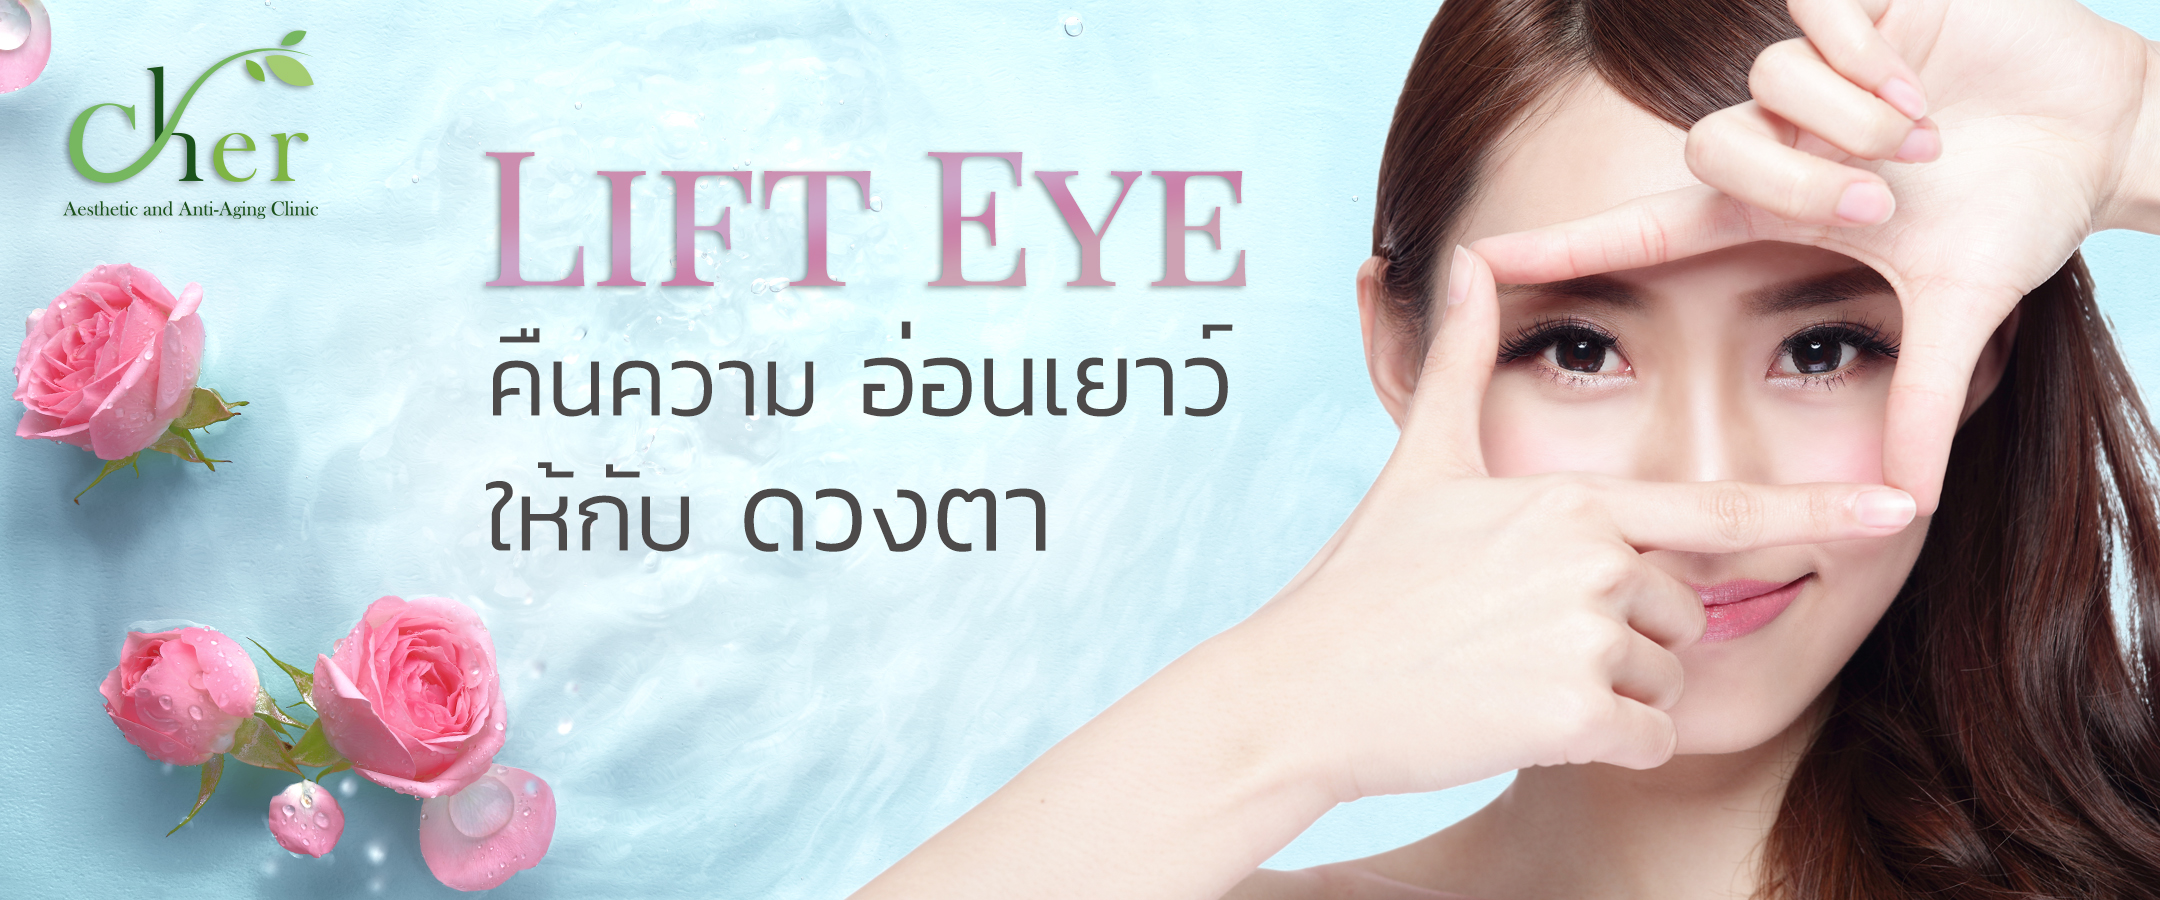 lift eye L copy.jpg